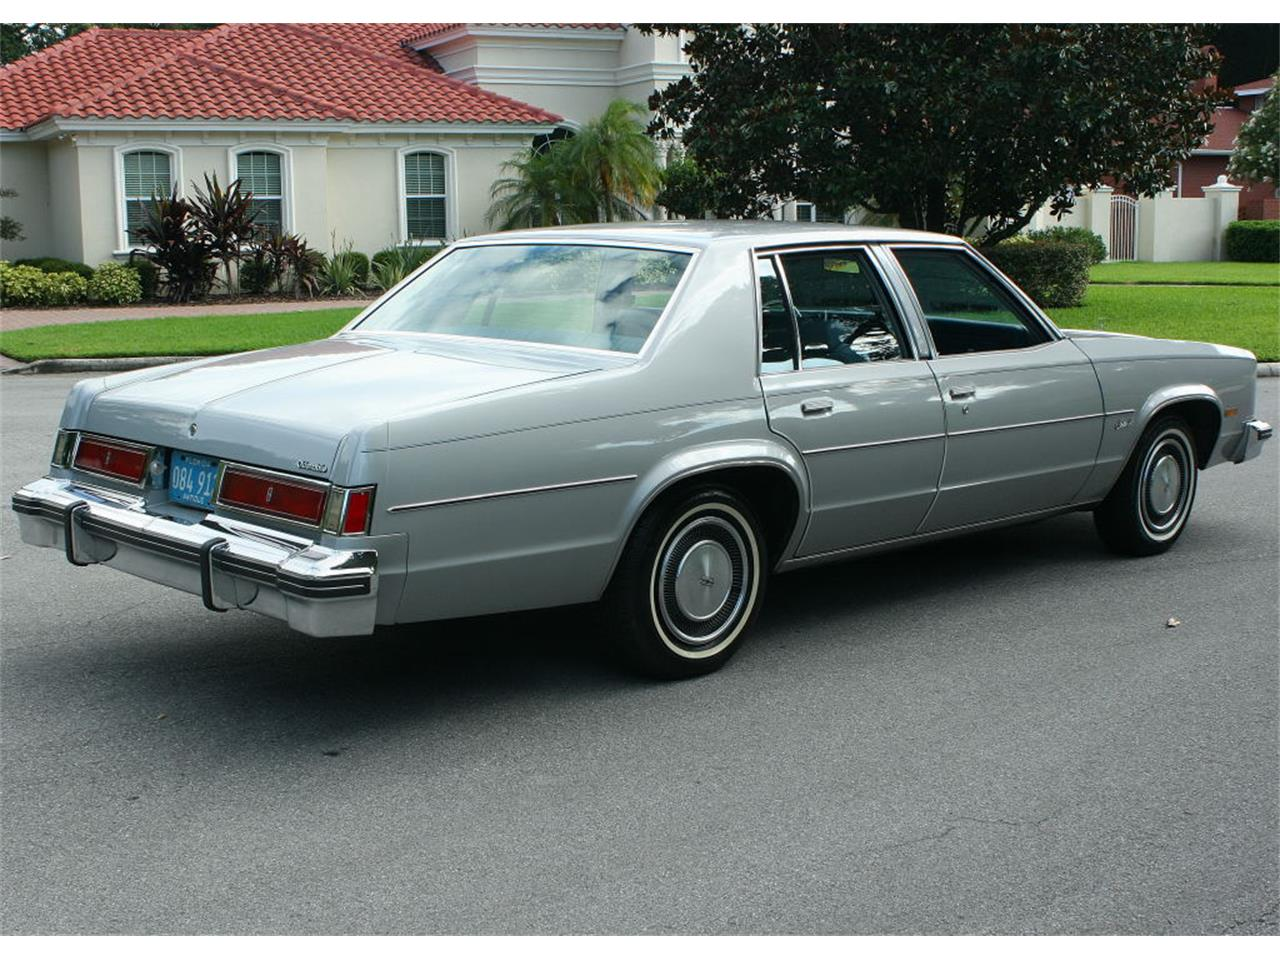 Large Picture of 1977 Oldsmobile Delta 88 located in Florida Offered by MJC Classic Cars - LFEK